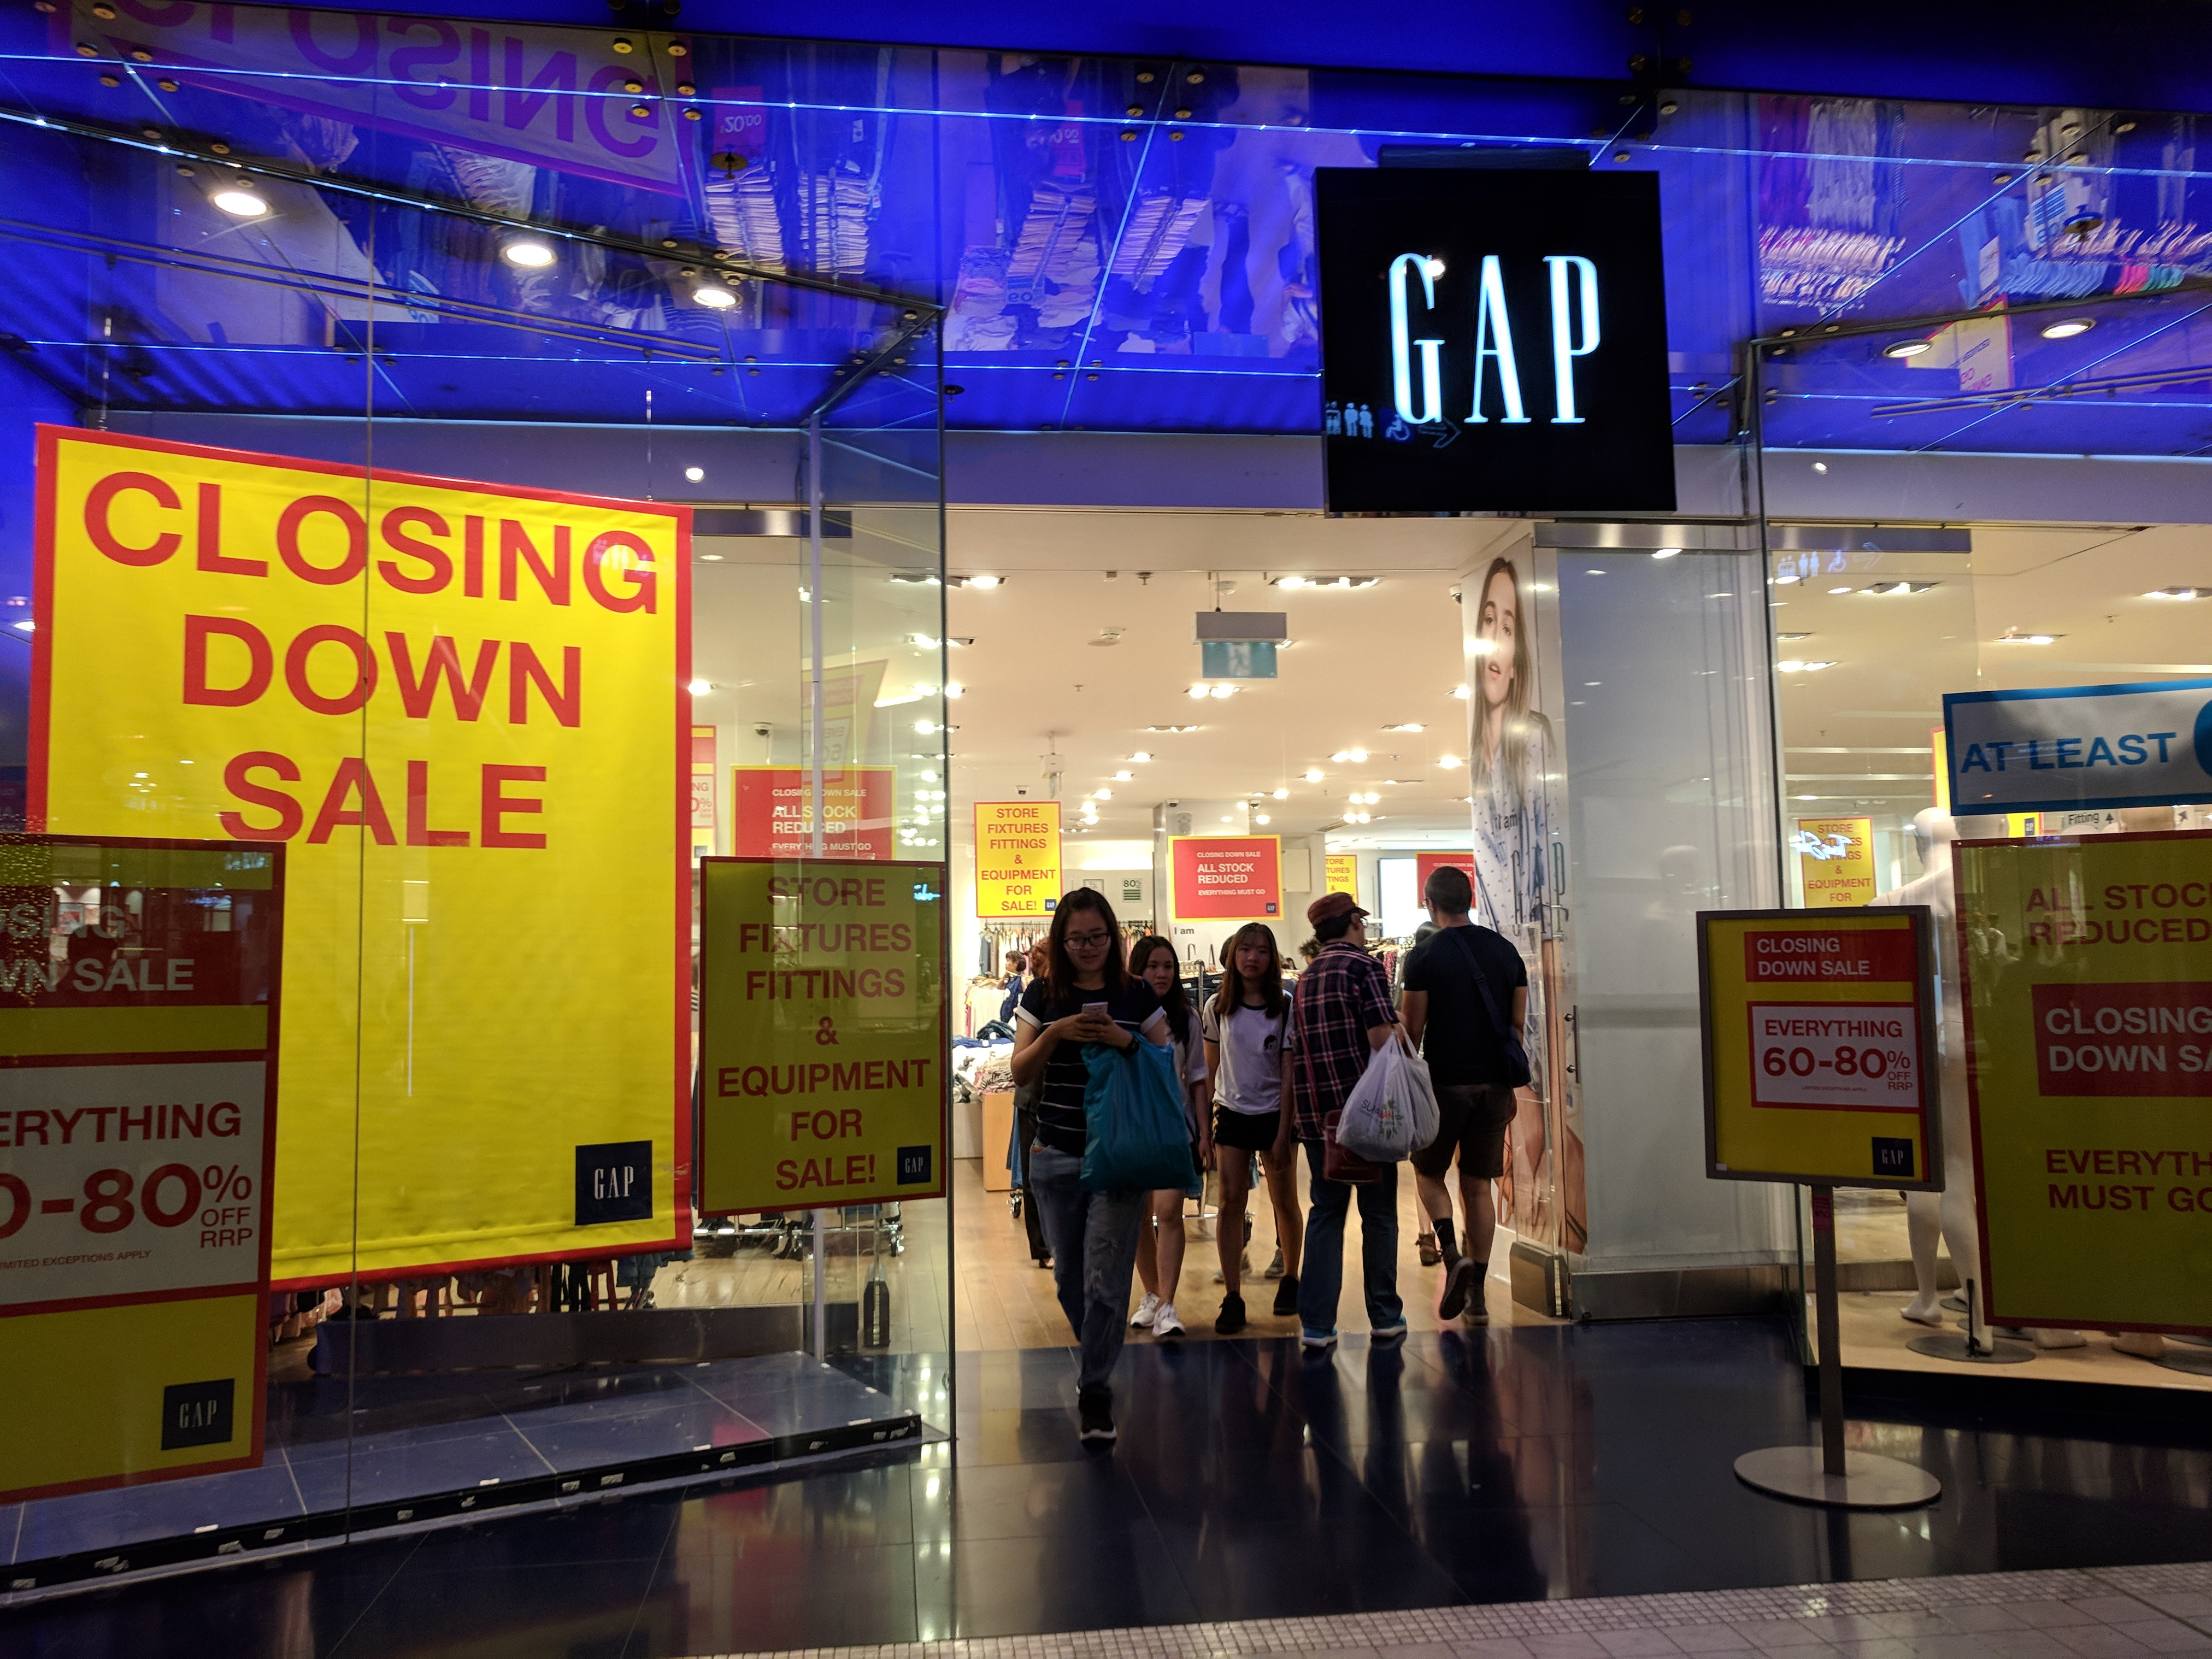 Find the latest Gap promo codes, coupons & deals for December - plus earn % Cash Back at Ebates. Join now for a free $10 Welcome Bonus.